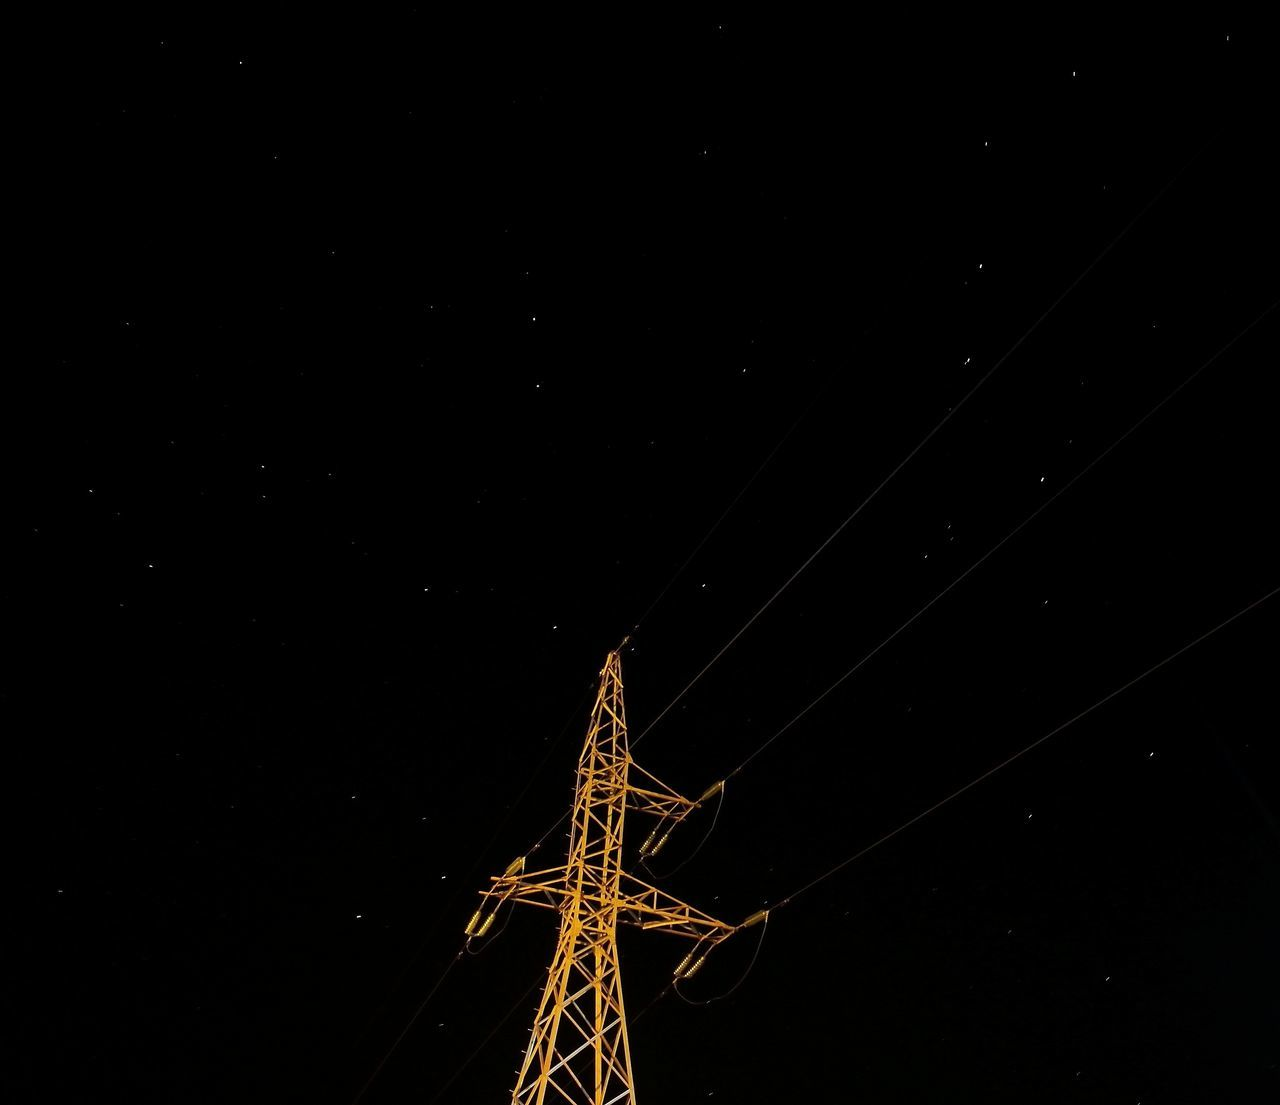 Almost Eifel Tower Electricity Tower Night Sky Star - Space Low Angle View Long Exposure No People Motion Galaxy Outdoors Dark EyeEmNewHere Black